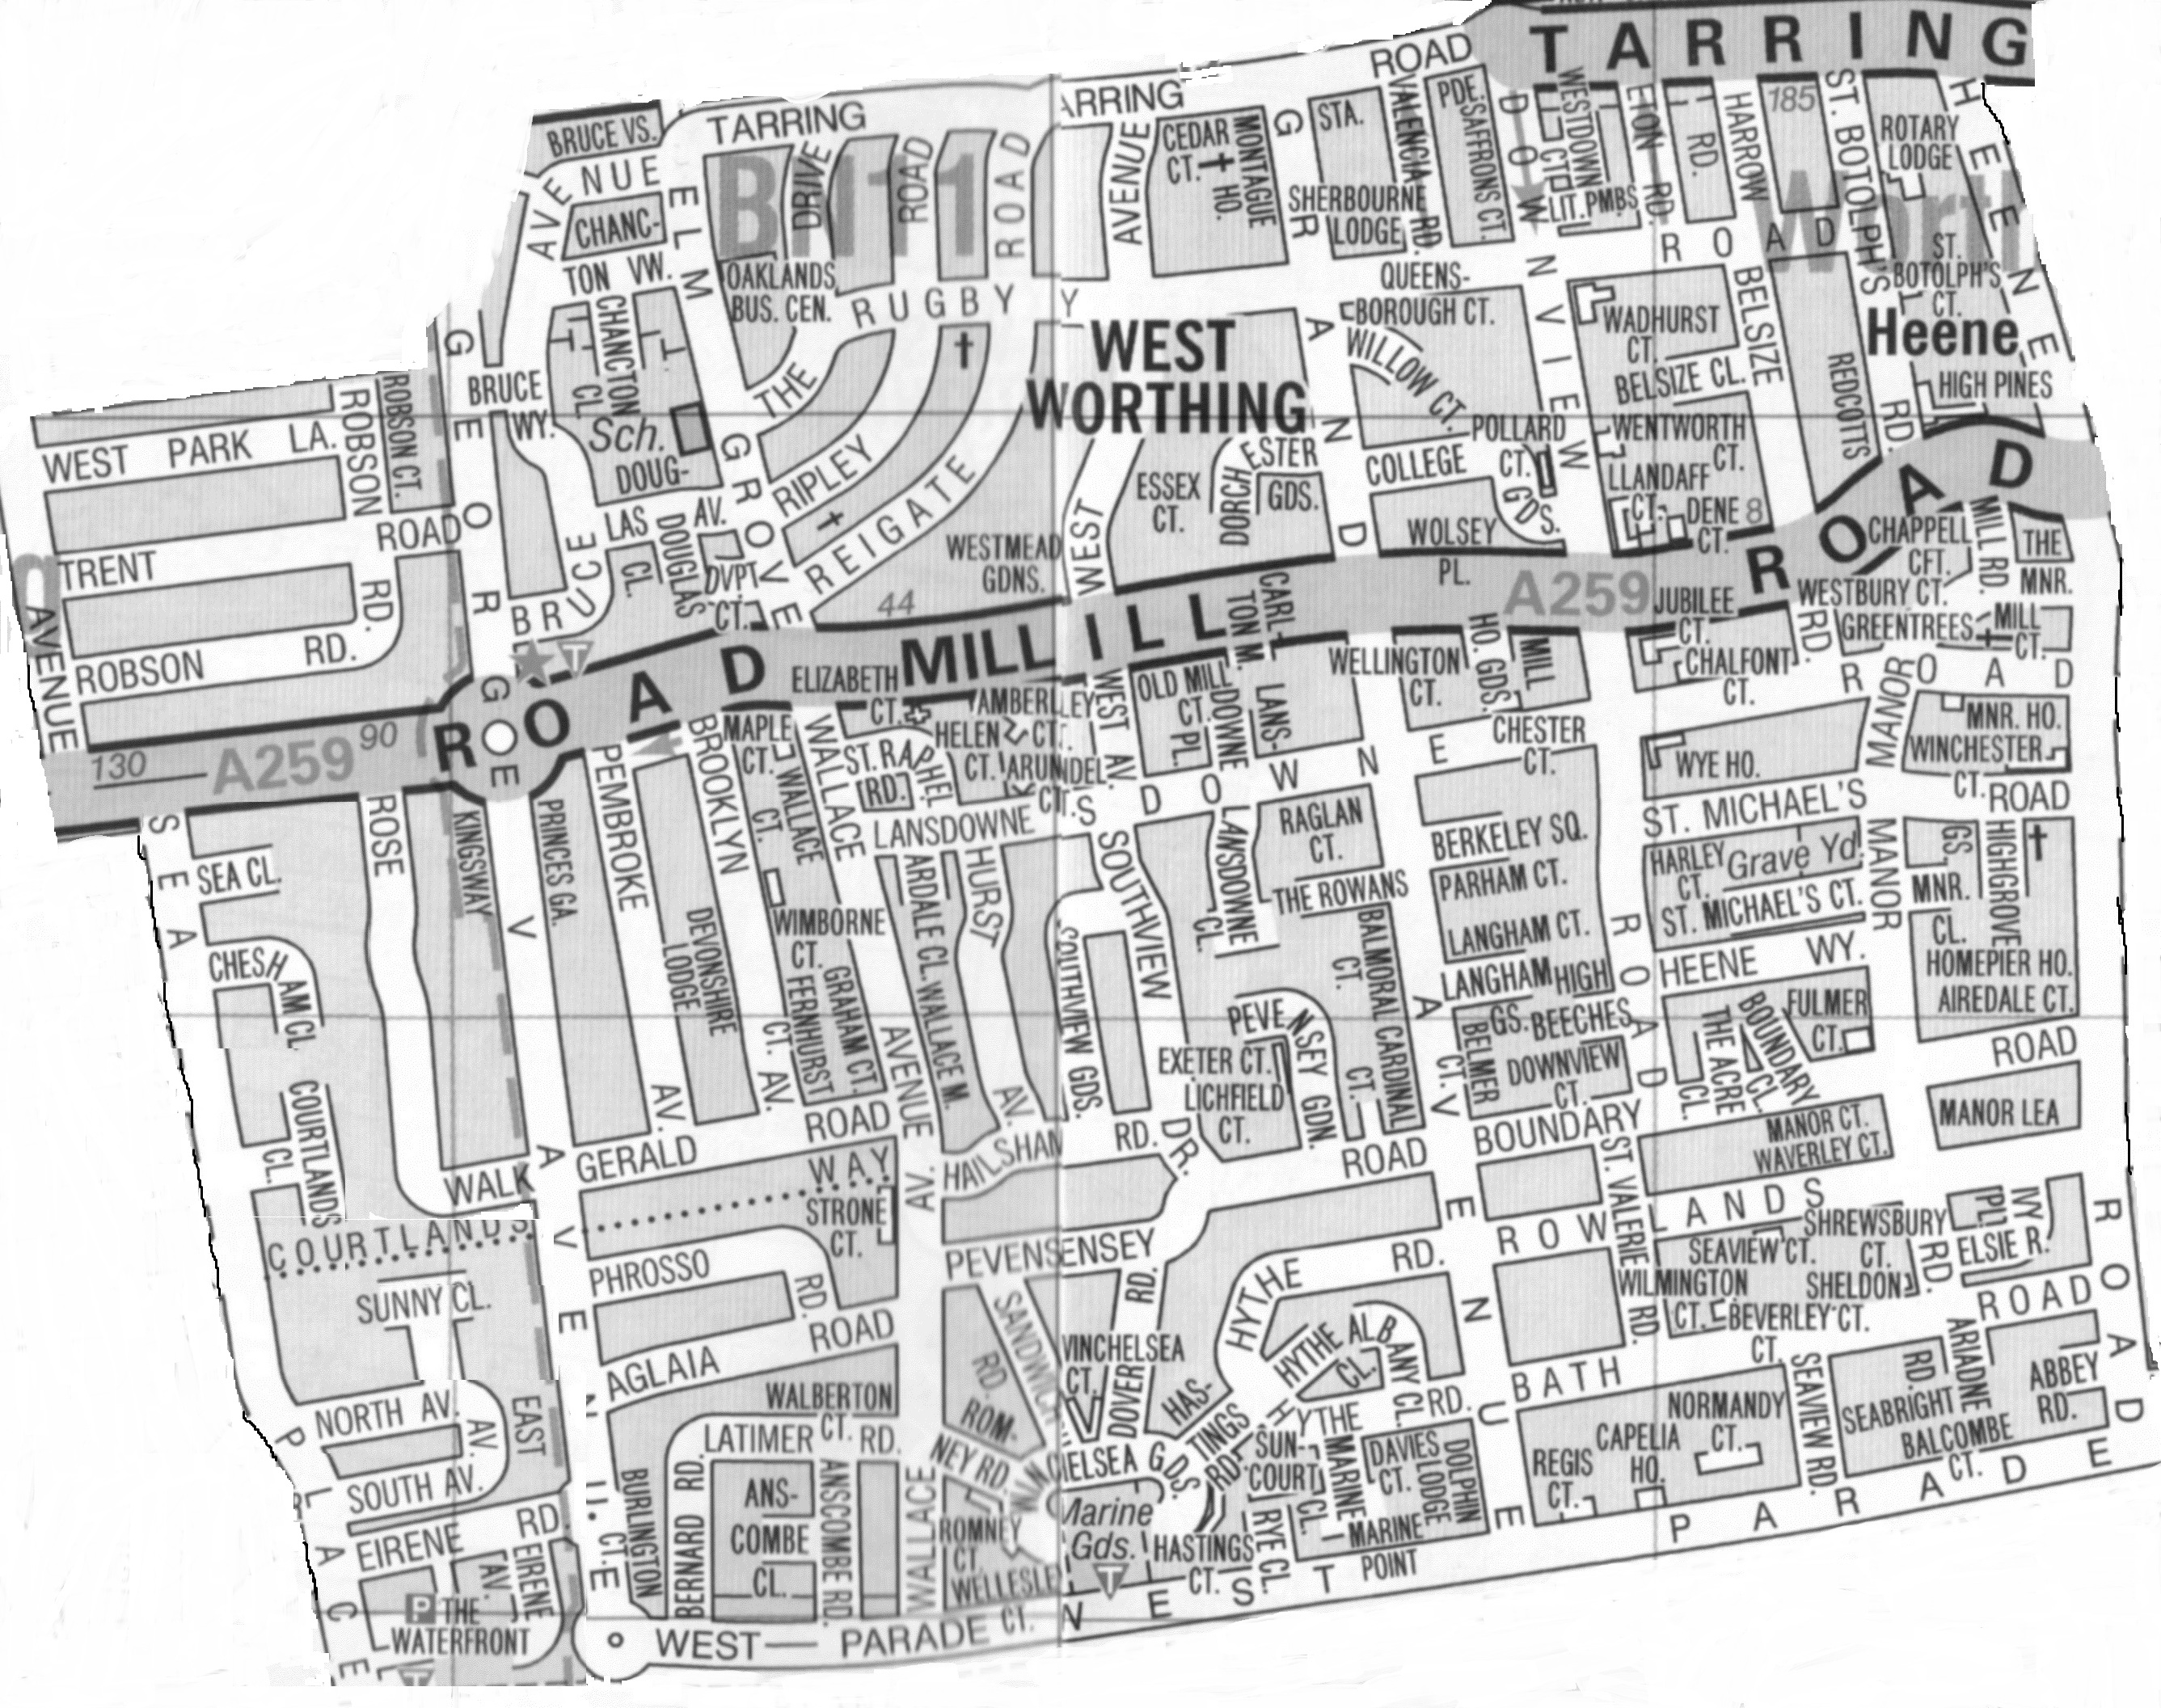 Worthing Direct Leaflet Distribution Services West Worthing delivery area map